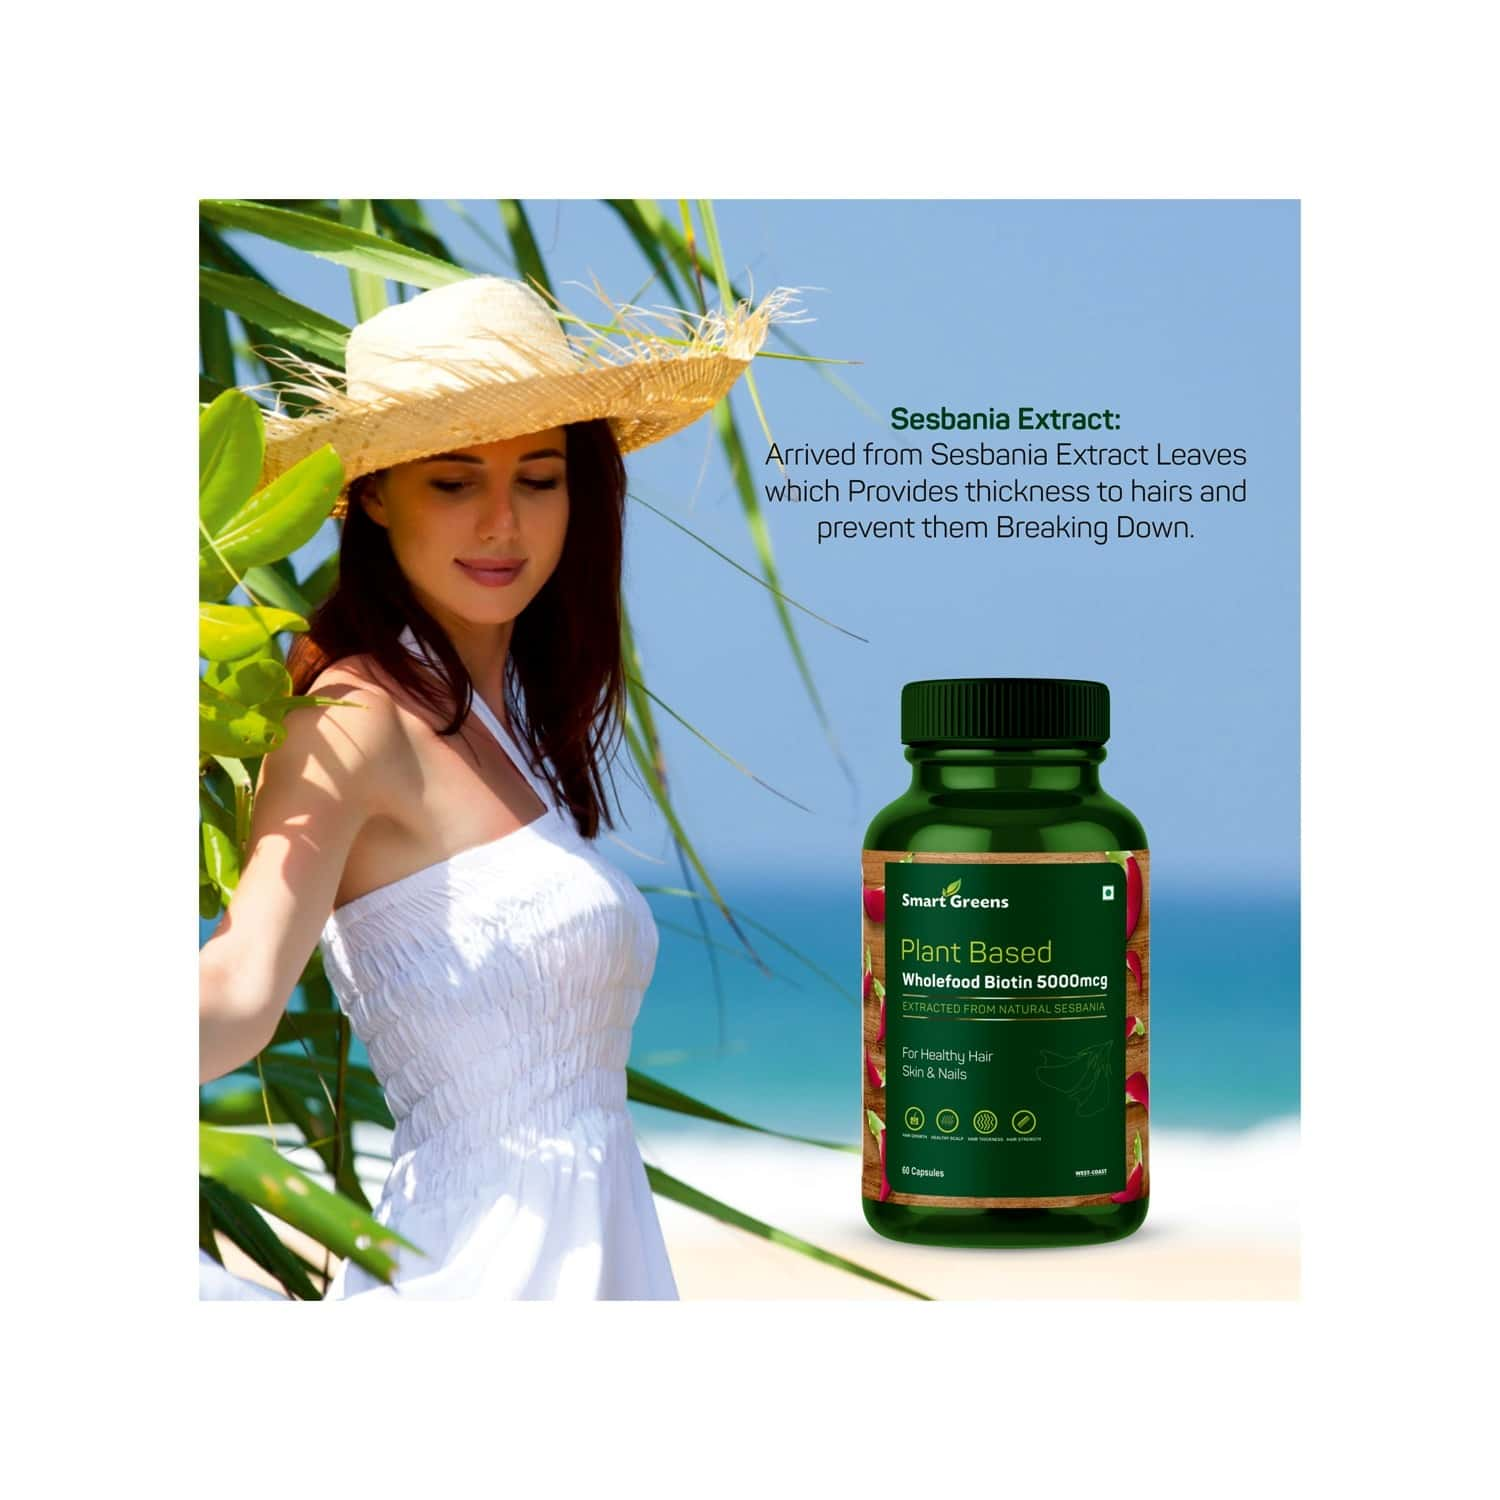 West Coast Smart Greens Plant Based Wholefood Biotin 5000 Mcg, For Healthy Hair Skin And Nails - 60 Capsules